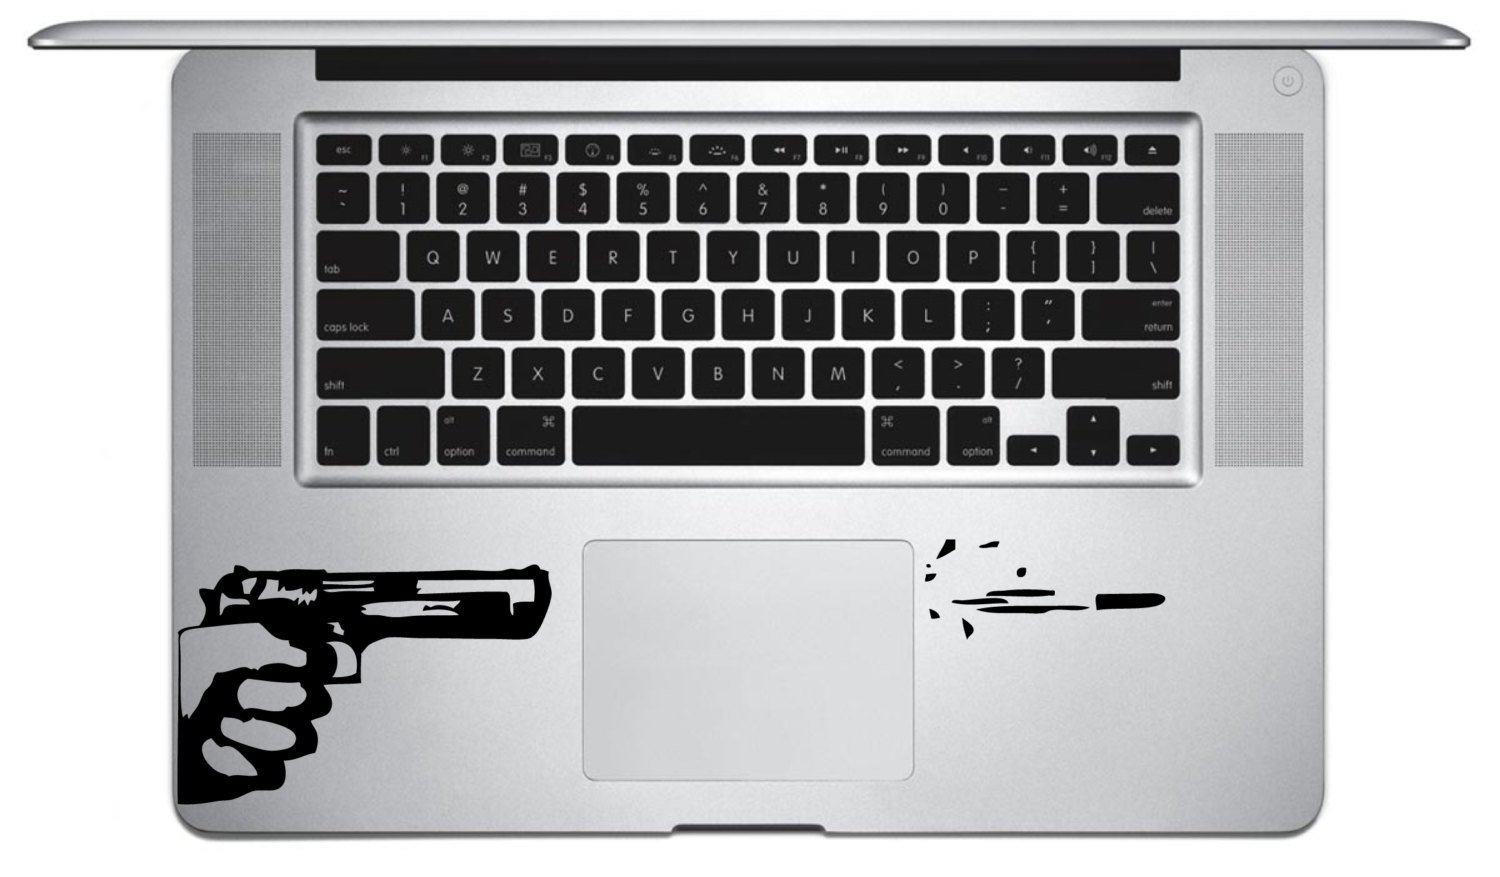 Amazon gun and bullet symbol keypad iphone ipad macbook decal amazon gun and bullet symbol keypad iphone ipad macbook decal skin sticker laptop computers accessories buycottarizona Choice Image